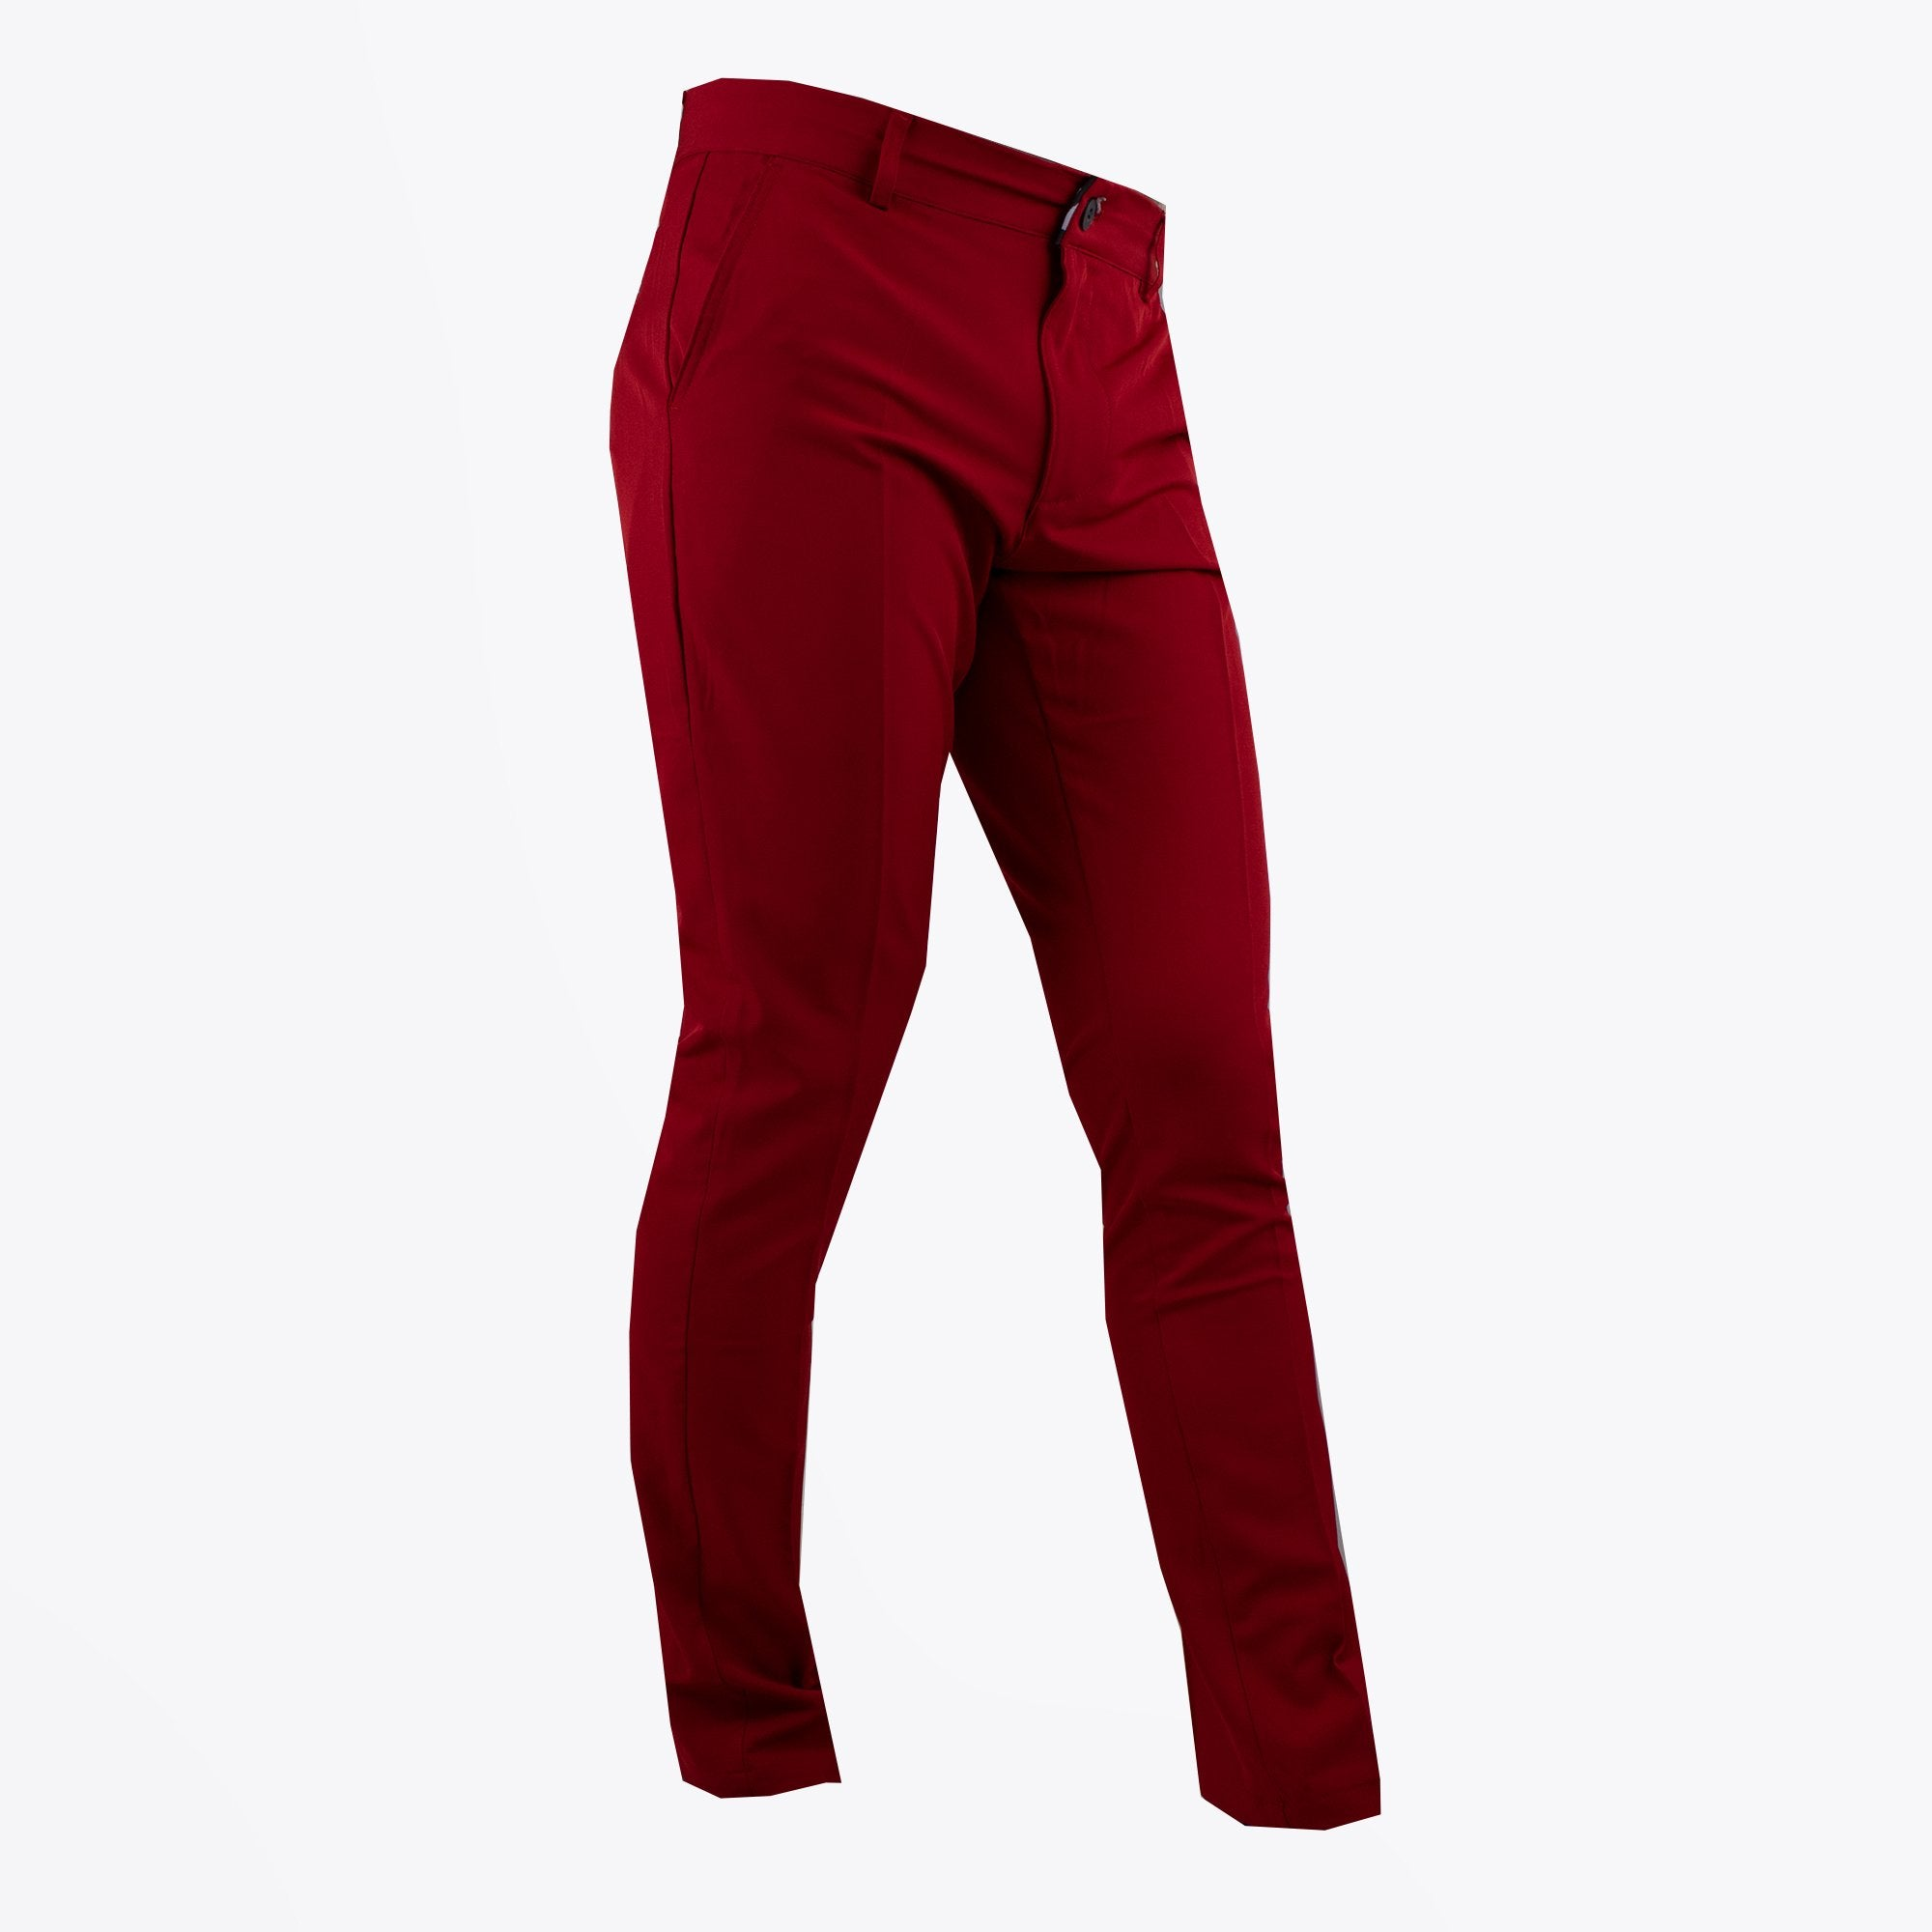 Druids Golf - Mens Clima Trousers (Red)